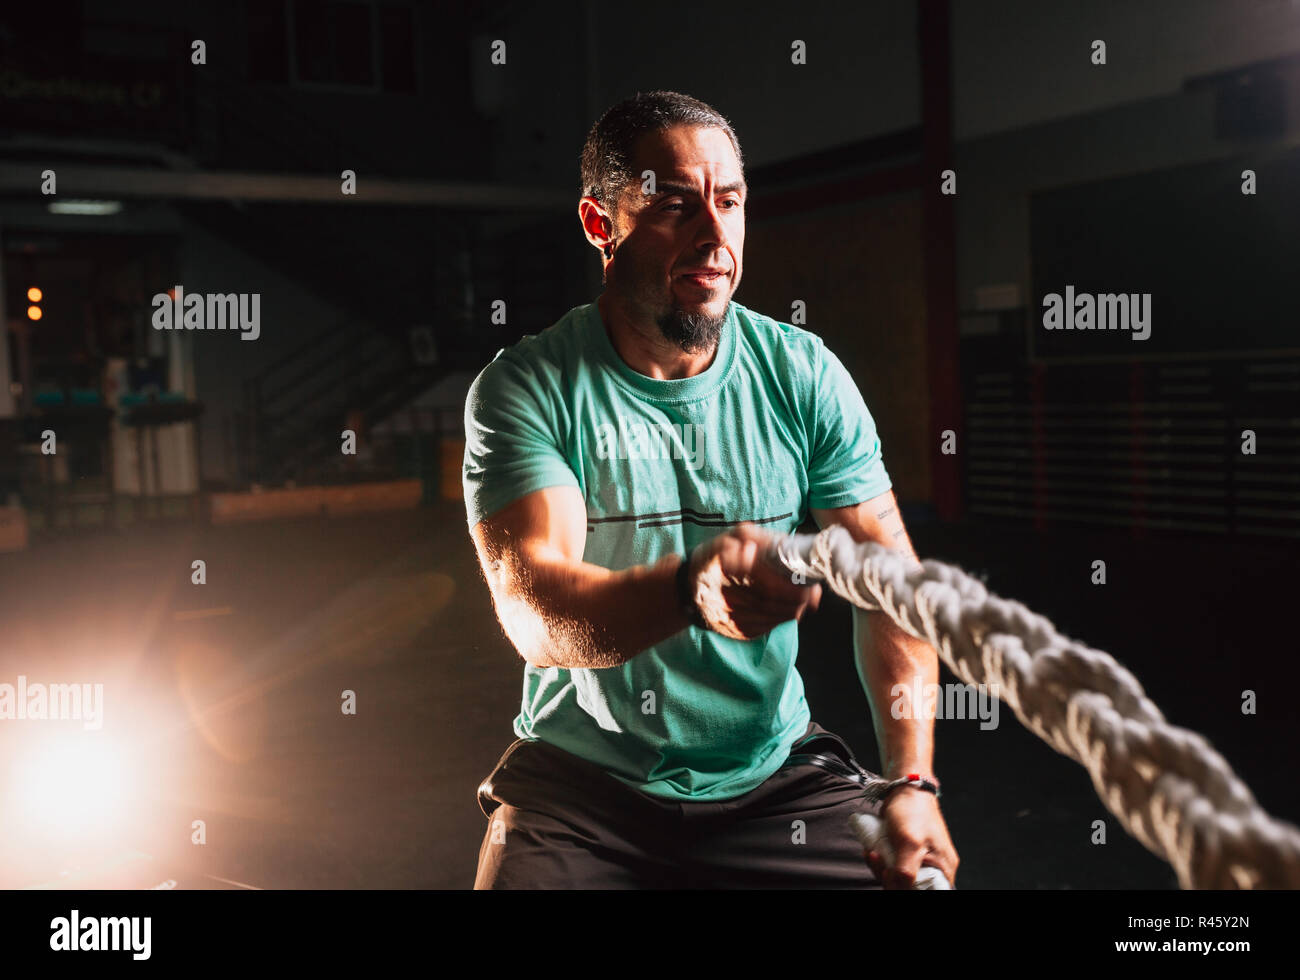 Athletic young man doing some cross-fit exercises with a rope indoor - Stock Image